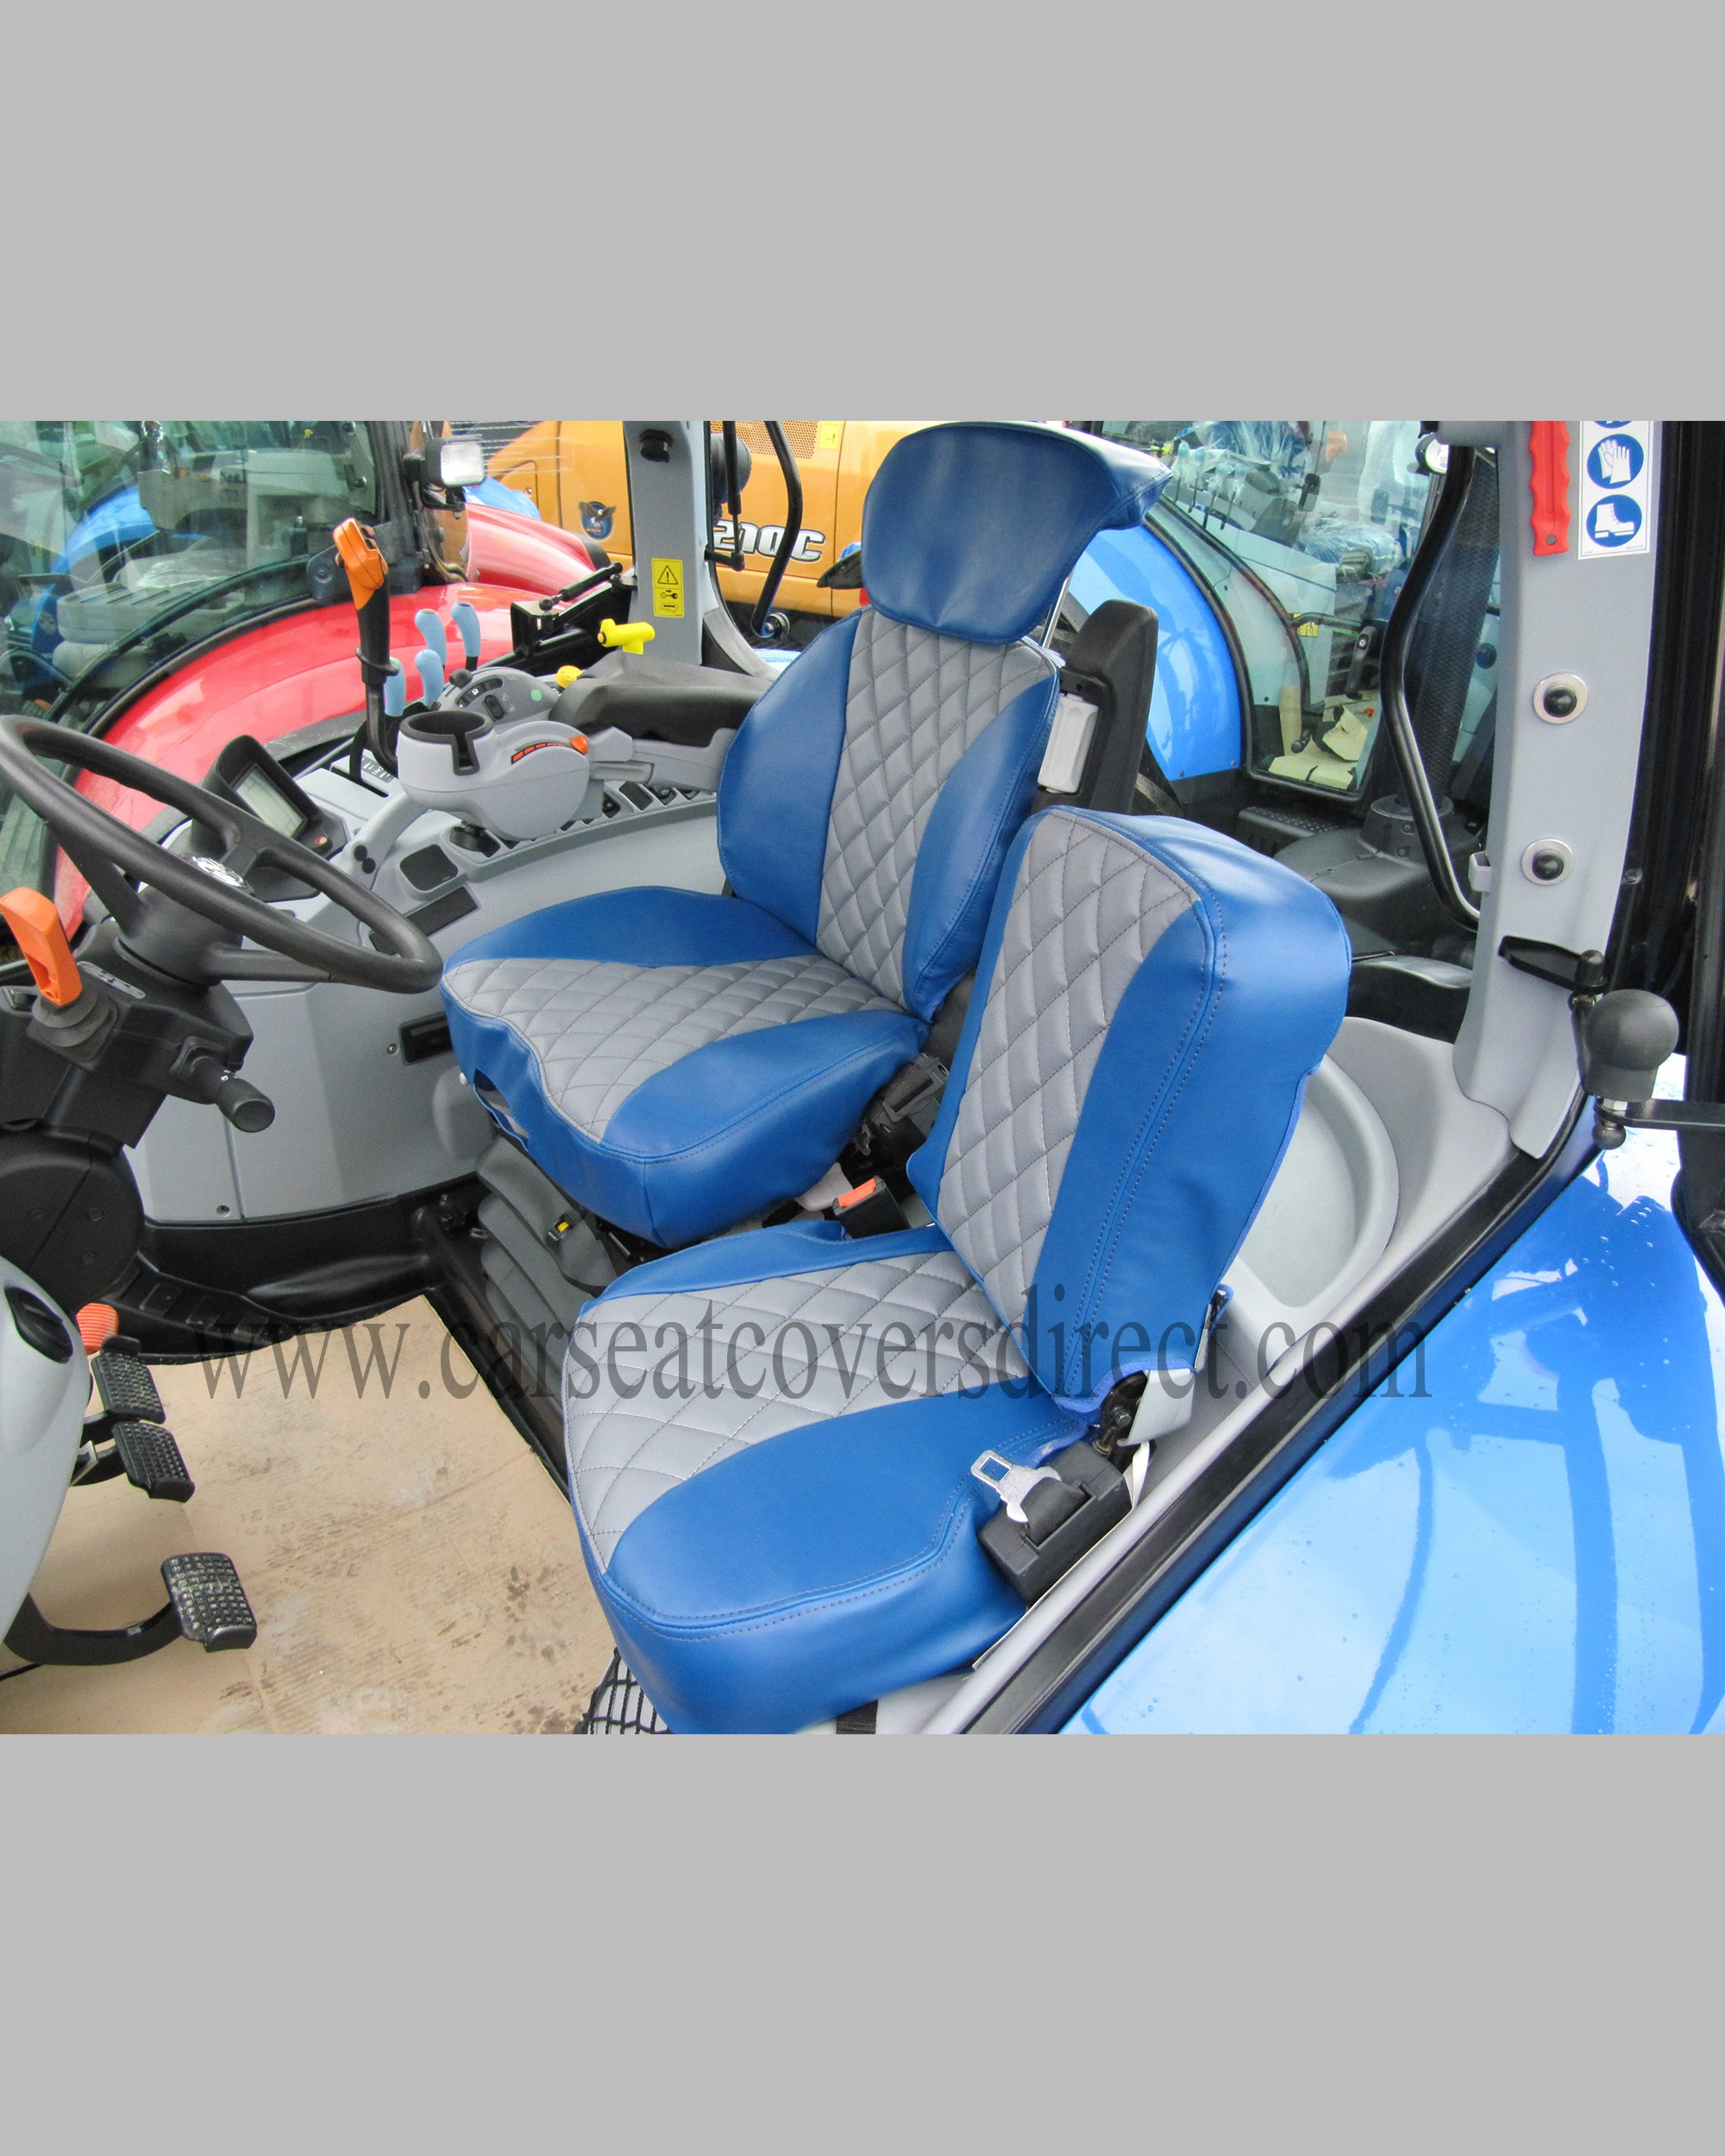 Grammer Maximo Dynamic Diamond Quilted Tailored Seat Covers for New Holland & CASE IH.